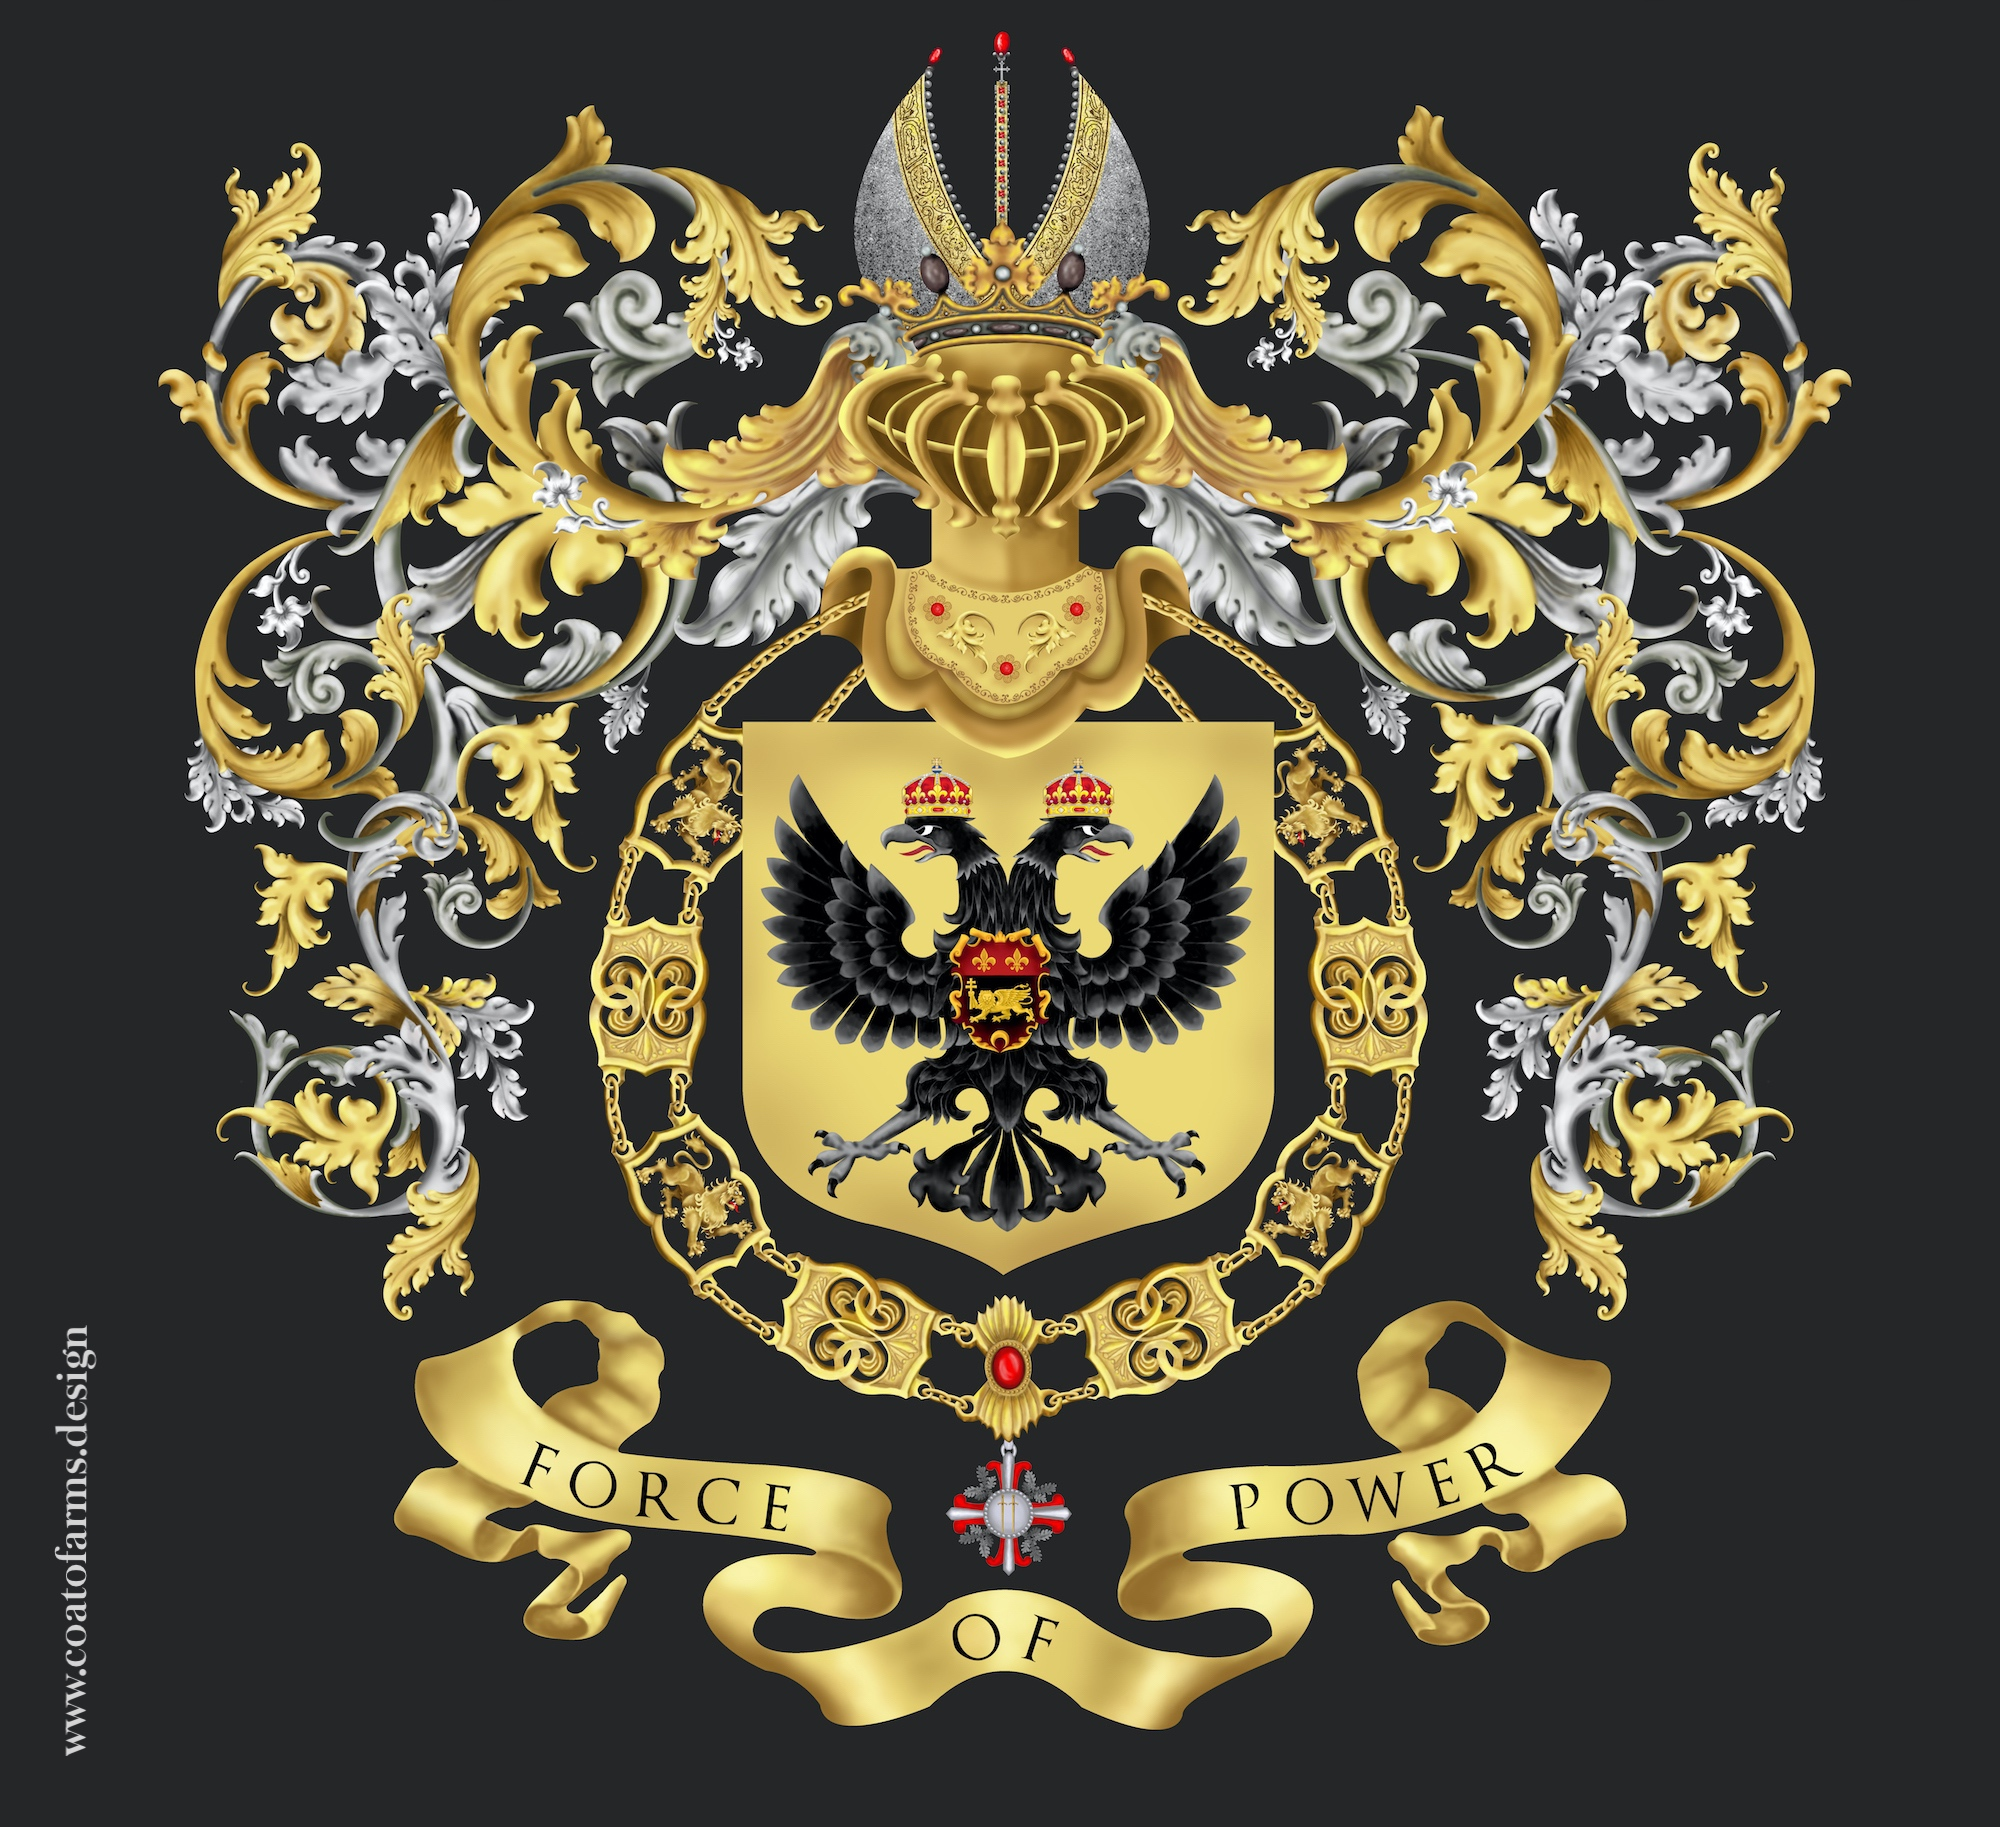 Coat of arms (family crest) I designed for an attorney family from Austria big